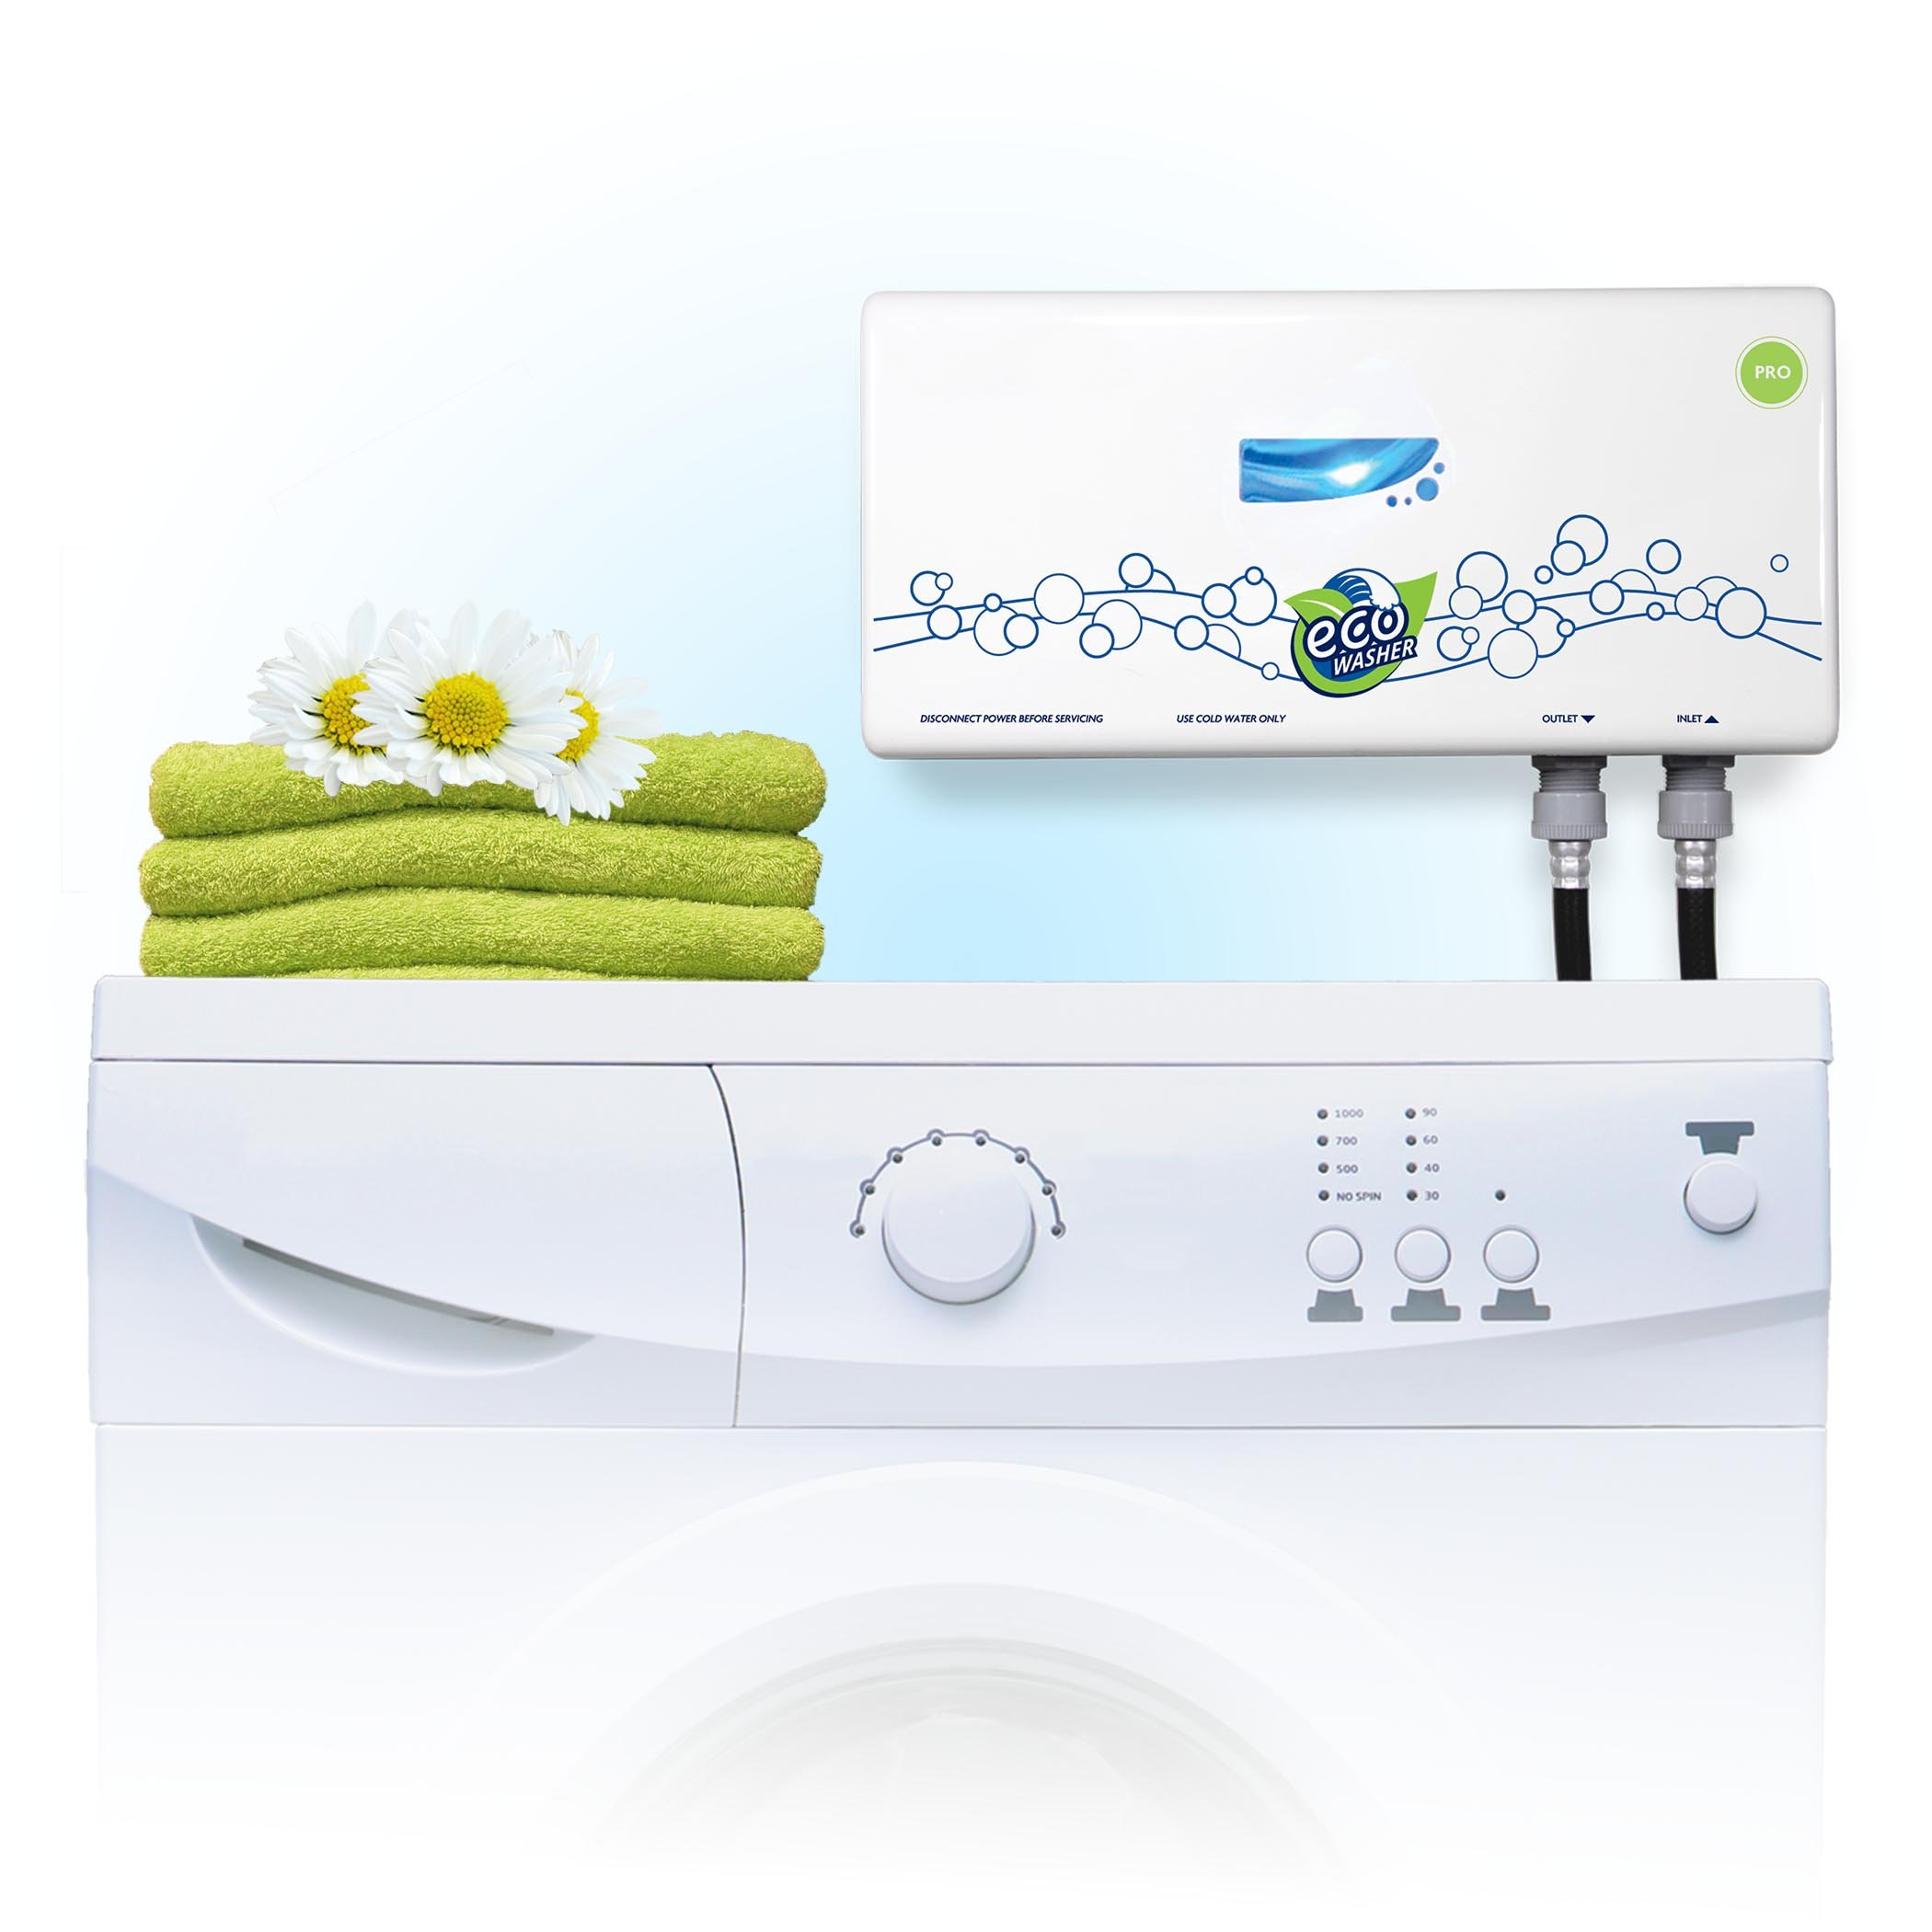 EdenPURE EcoWasher Pro Laundry Cleaning System by Edenpure